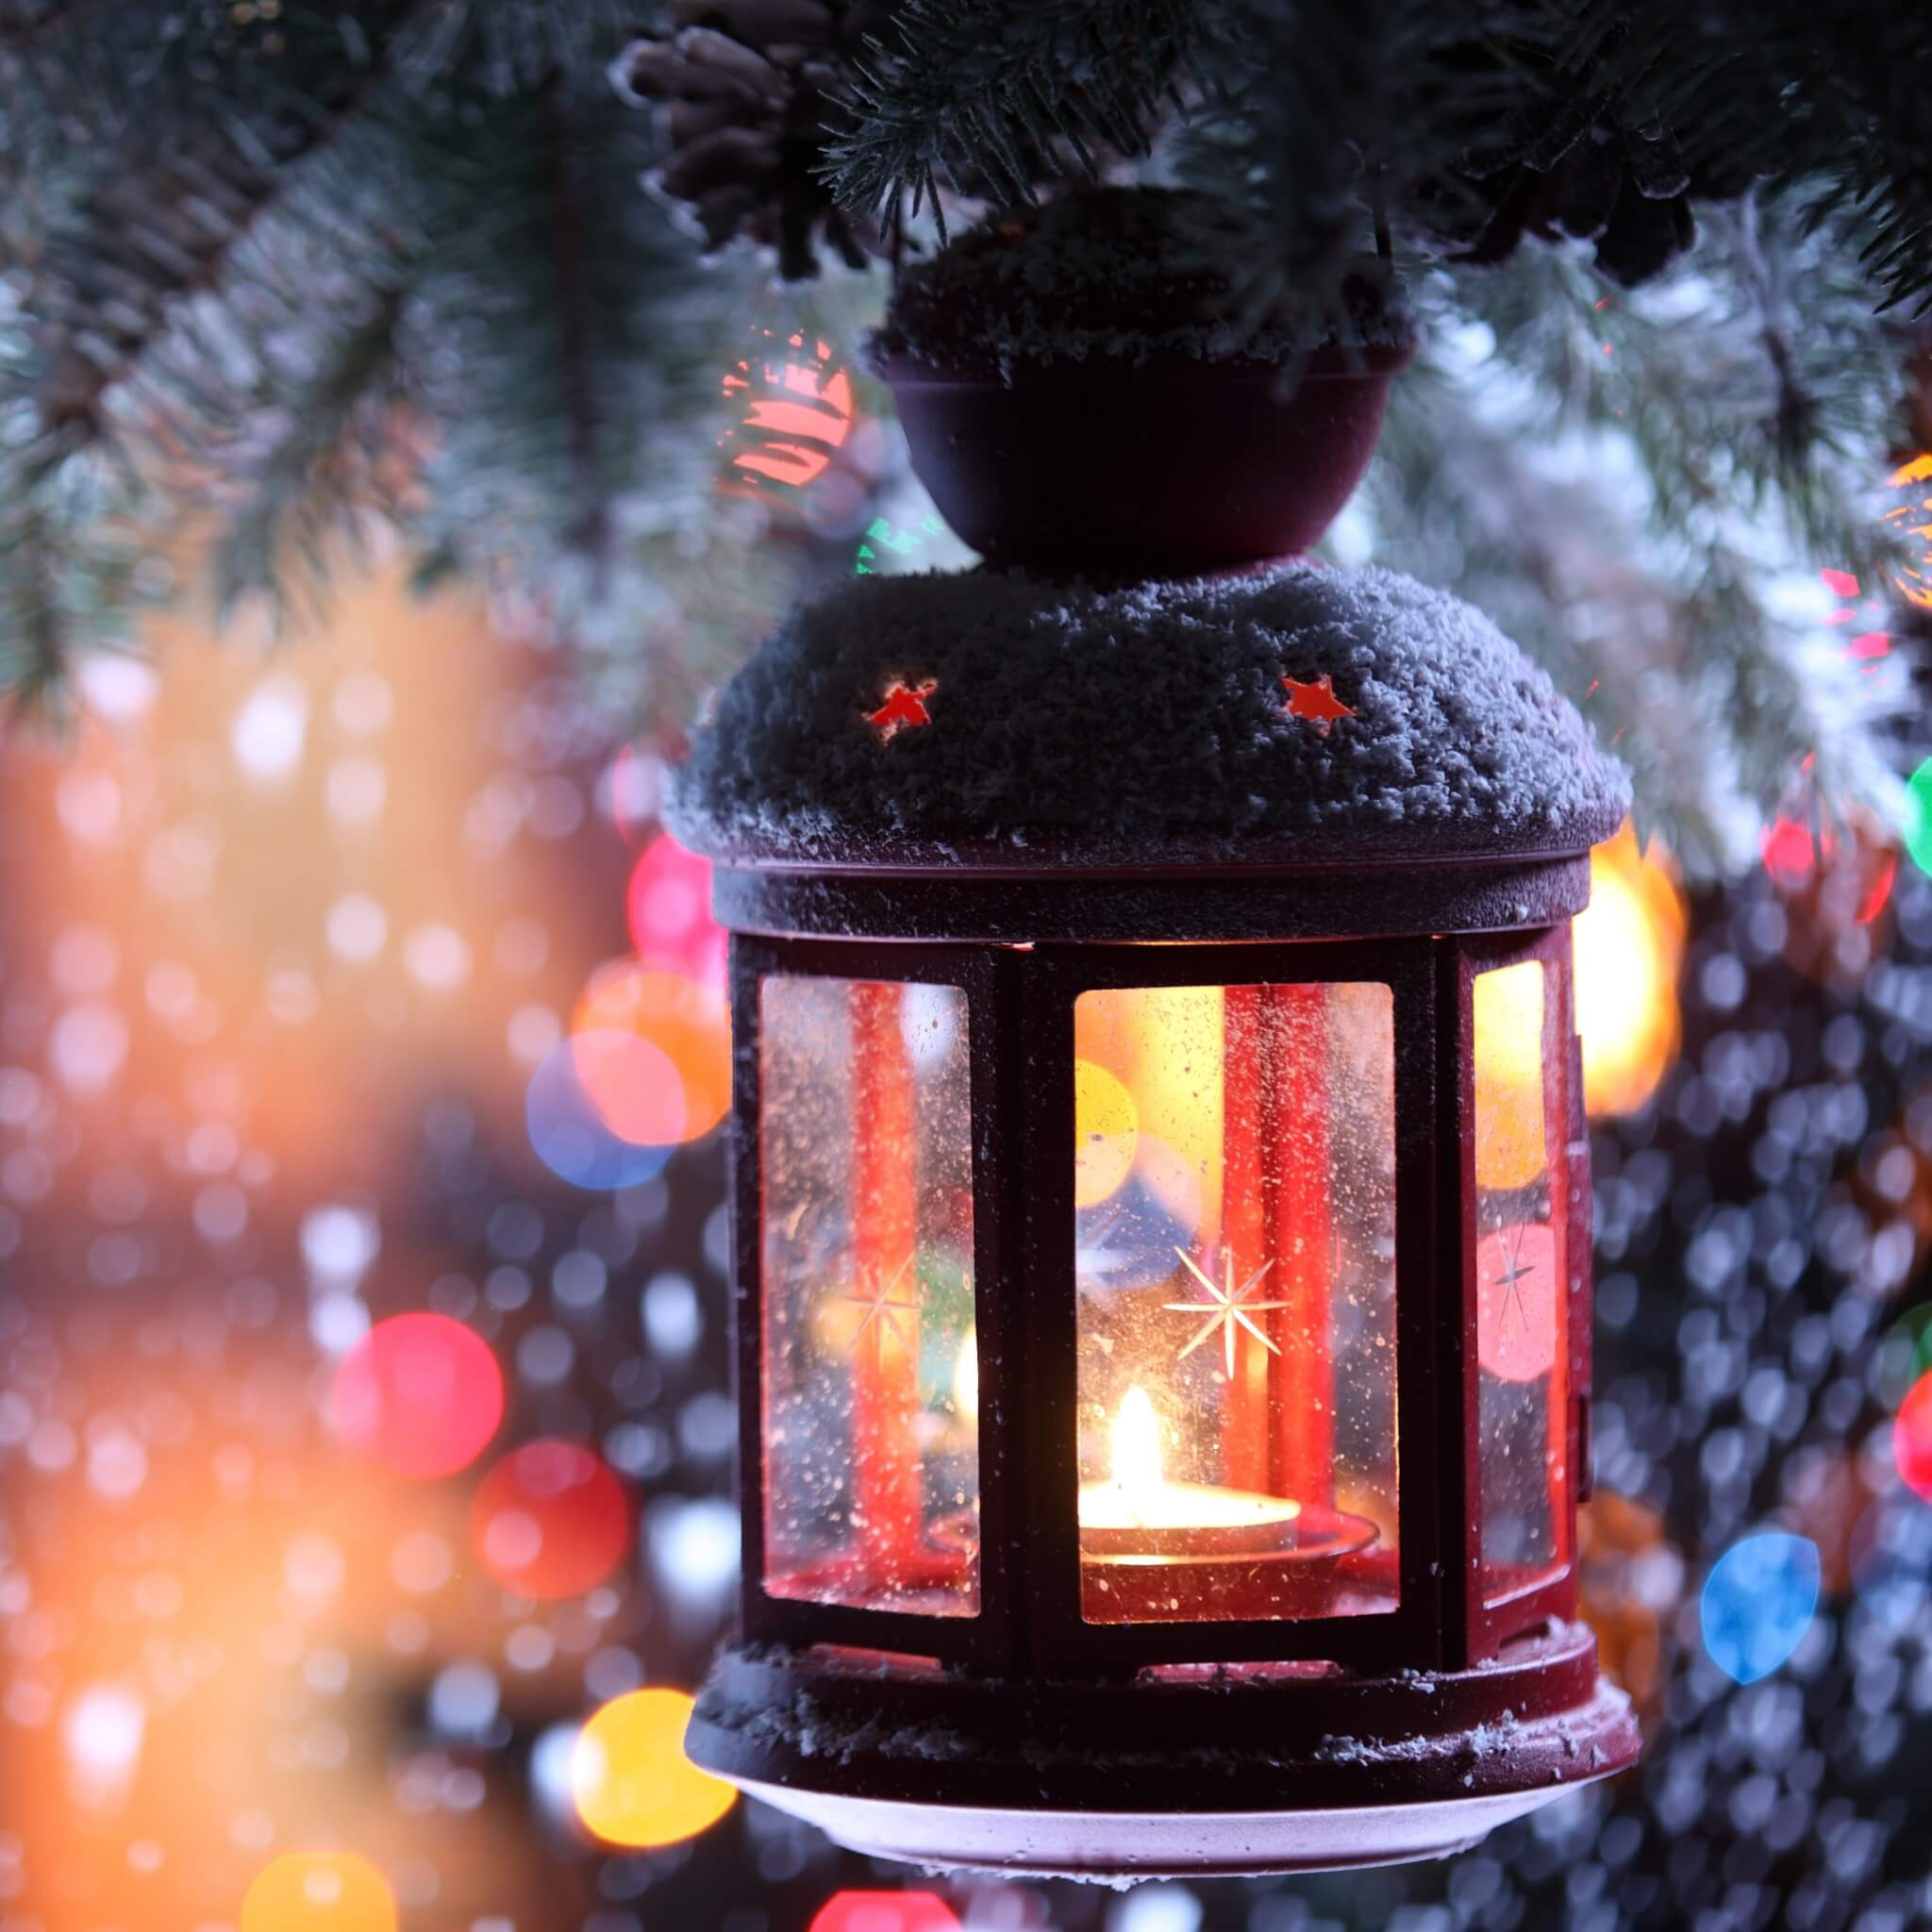 candle_torch_branch_snow_winter_snowflakes_christmas_tree_77025_2048x2048